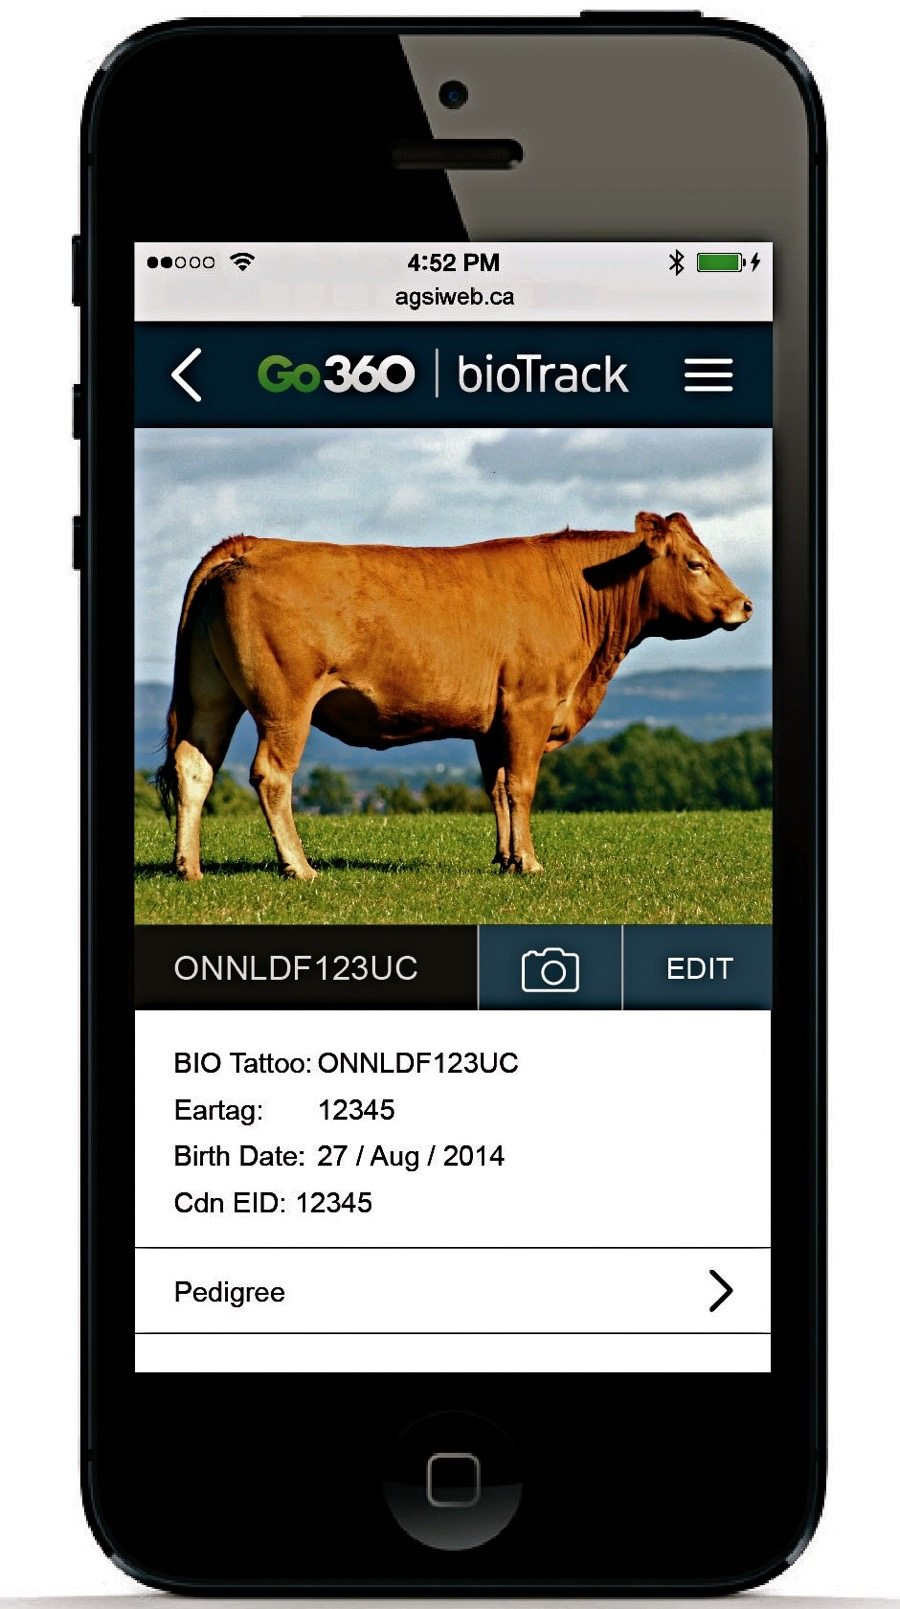 Go360bioTrack_Phone_2